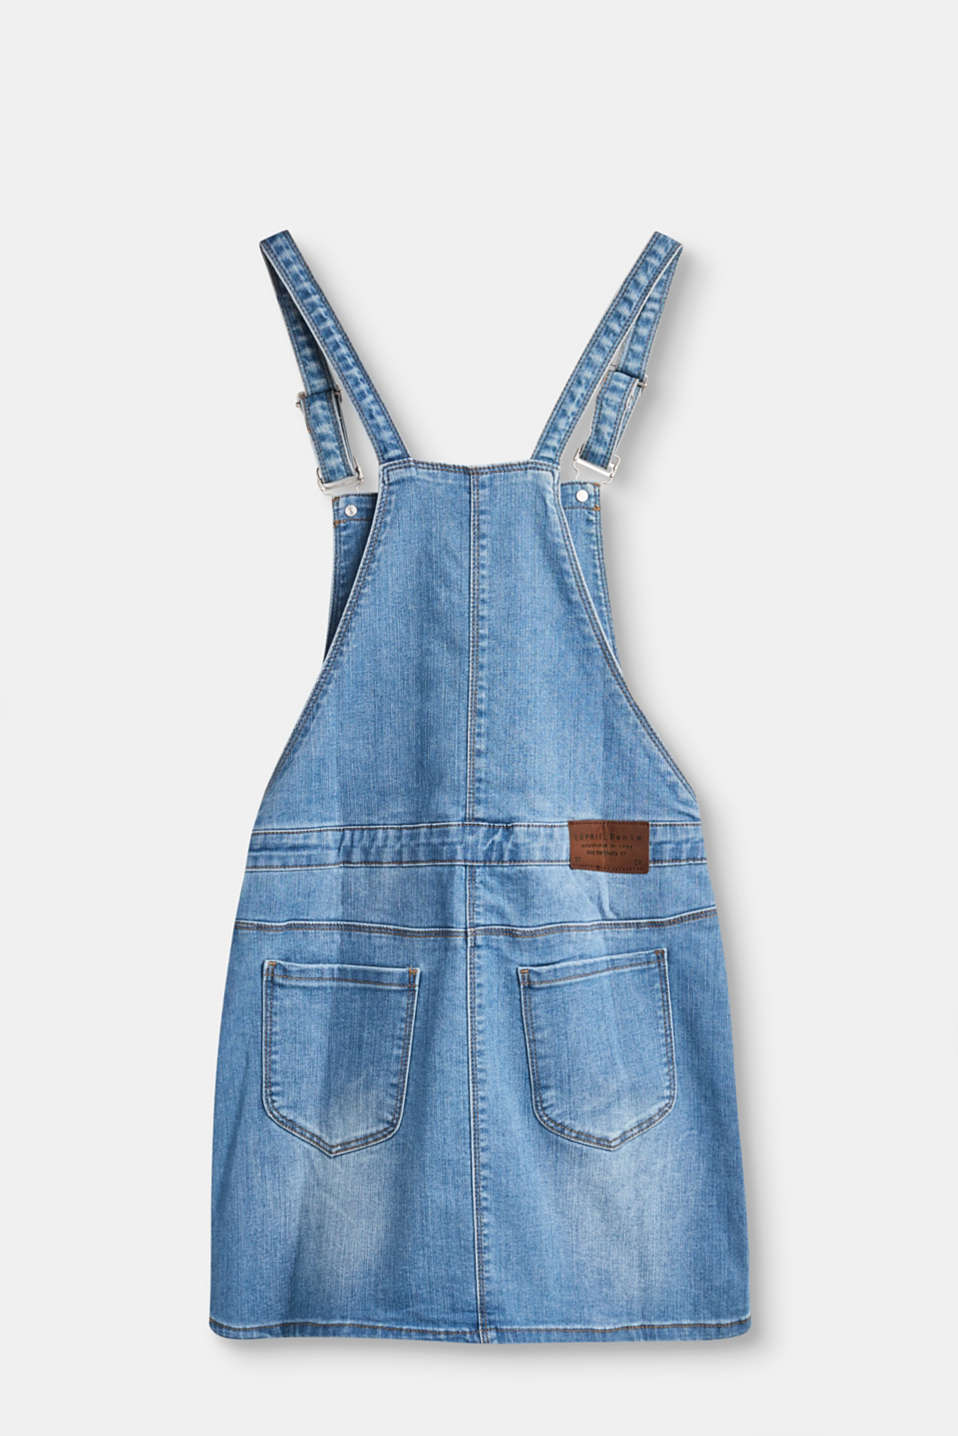 Denim pinafore, adjustable waist